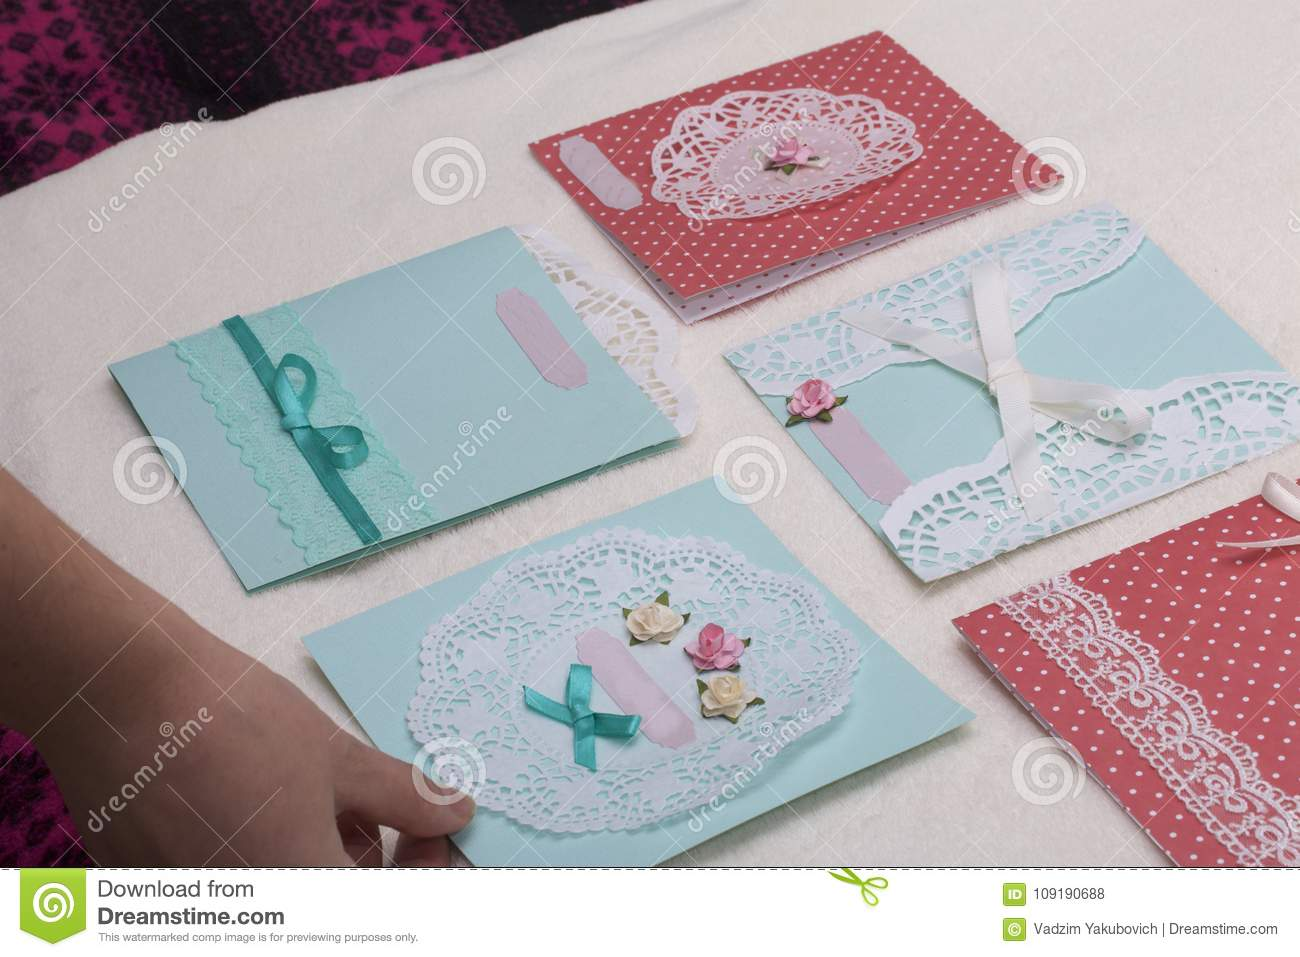 The girl is engaged in making greeting cards at home using paper the girl is engaged in making greeting cards at home using paper lace braid and other materials m4hsunfo